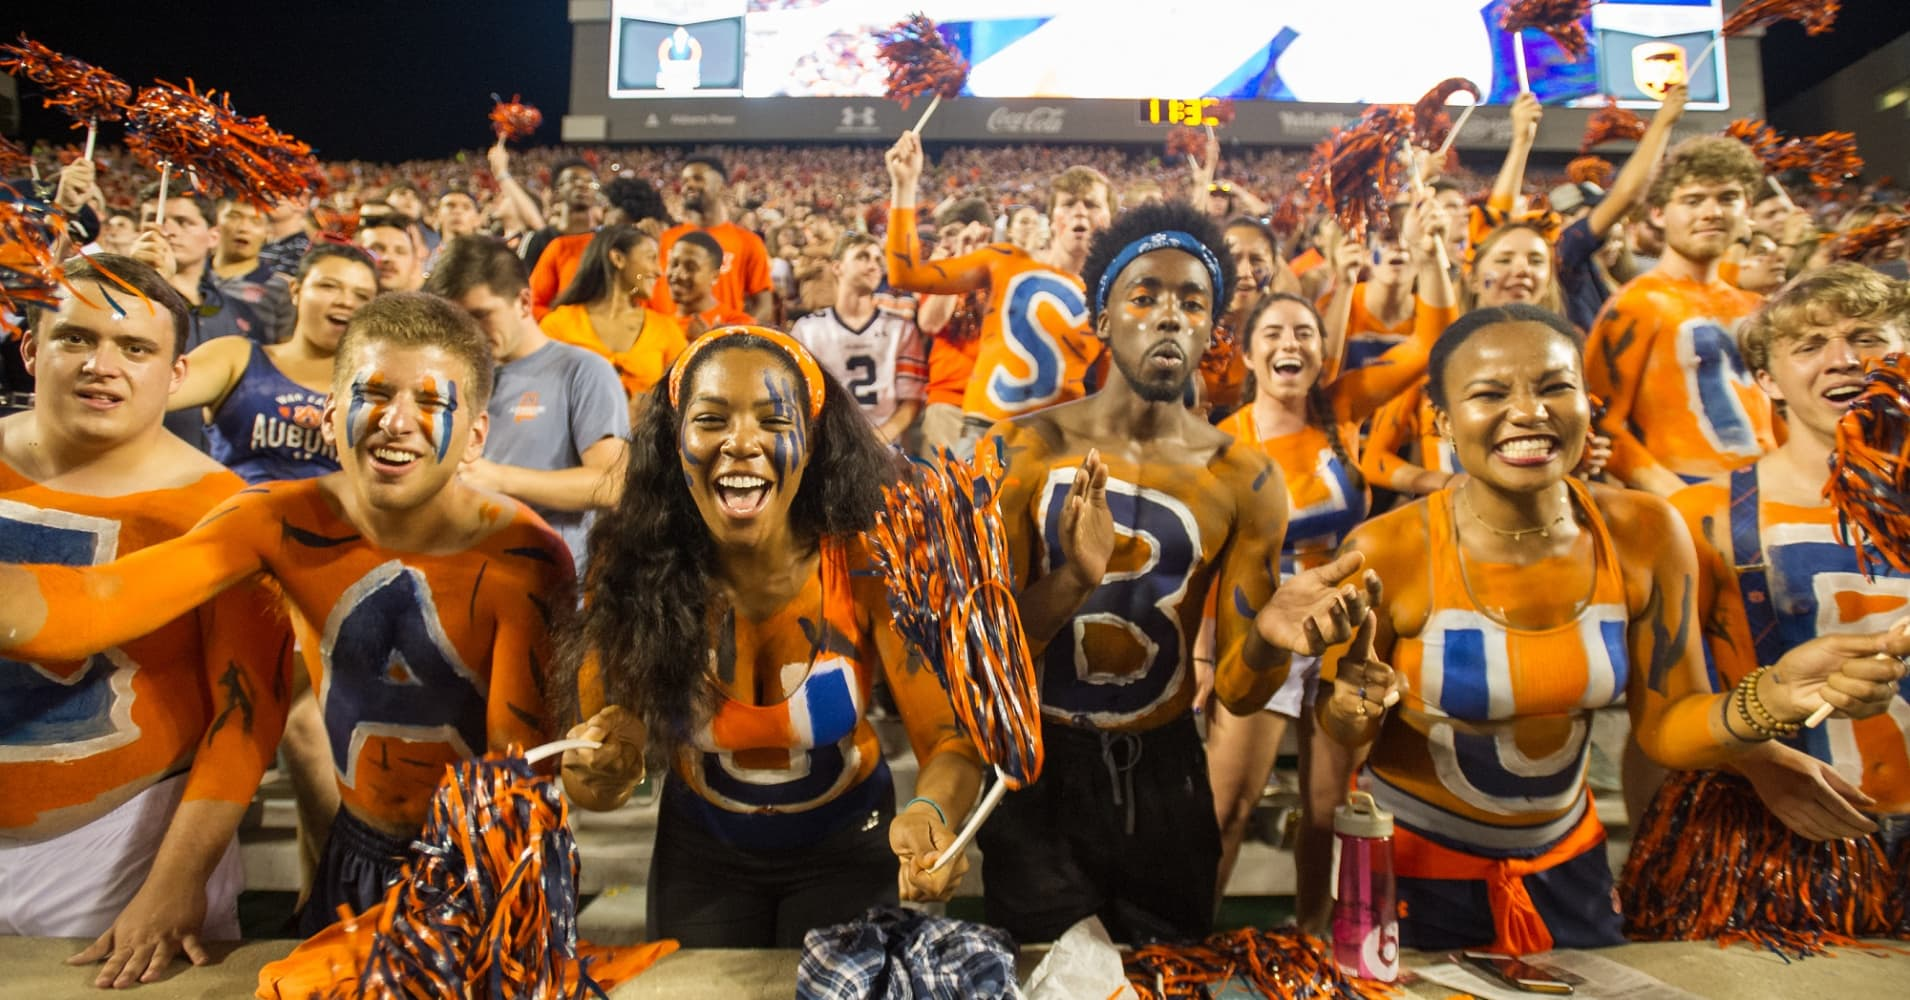 12 Best websites to watch college football online for free ...